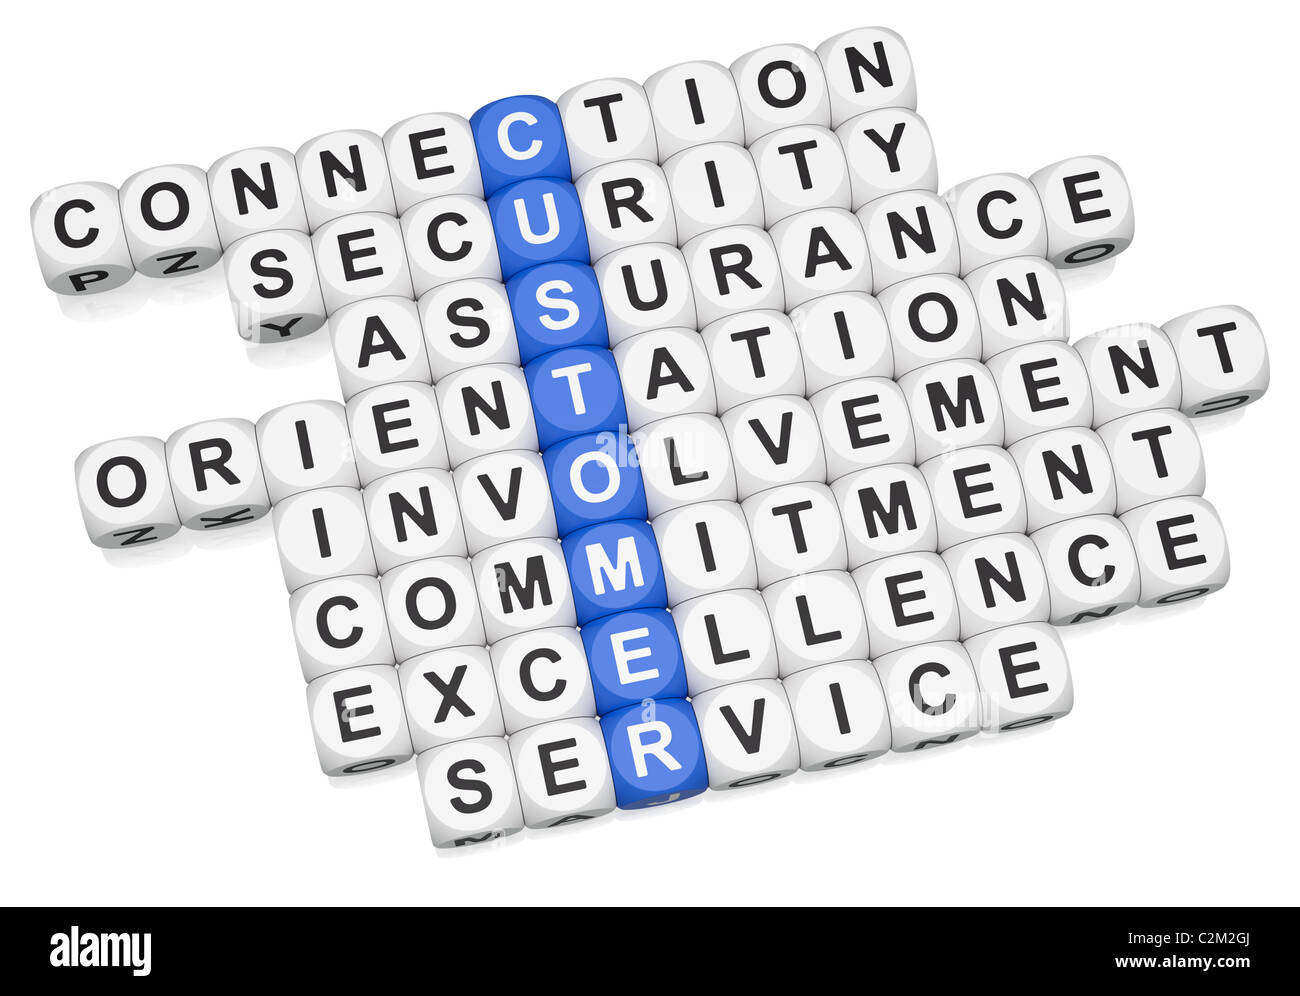 Customer relations crossword on white background - Stock Image